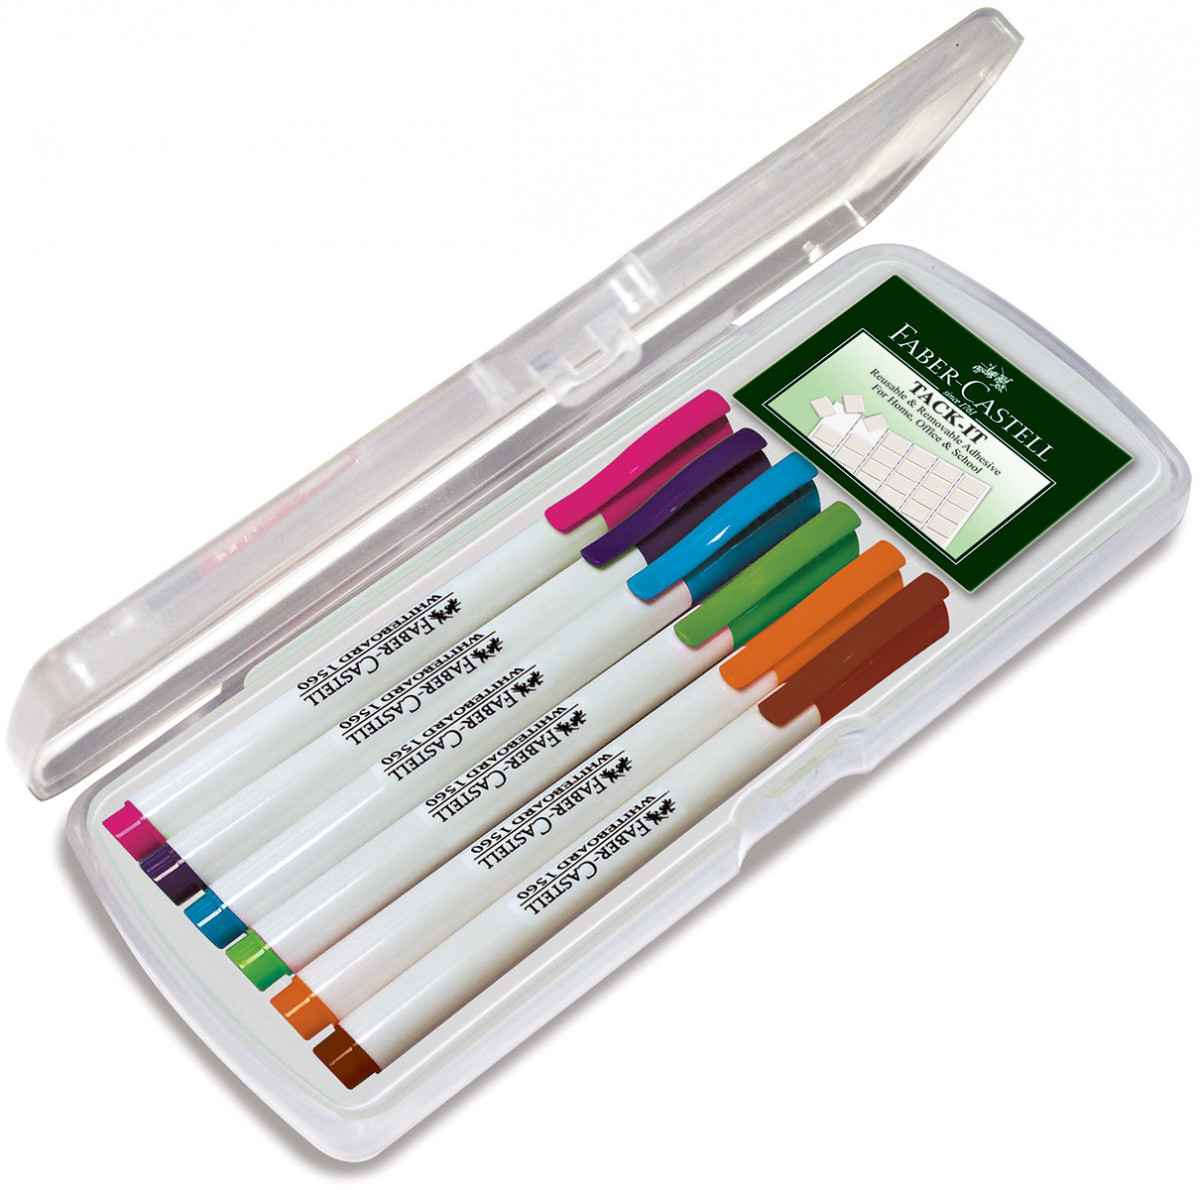 Faber-Castell 1560 Slim Whiteboard Marker - Assorted Fun Colours (Pack of 6)